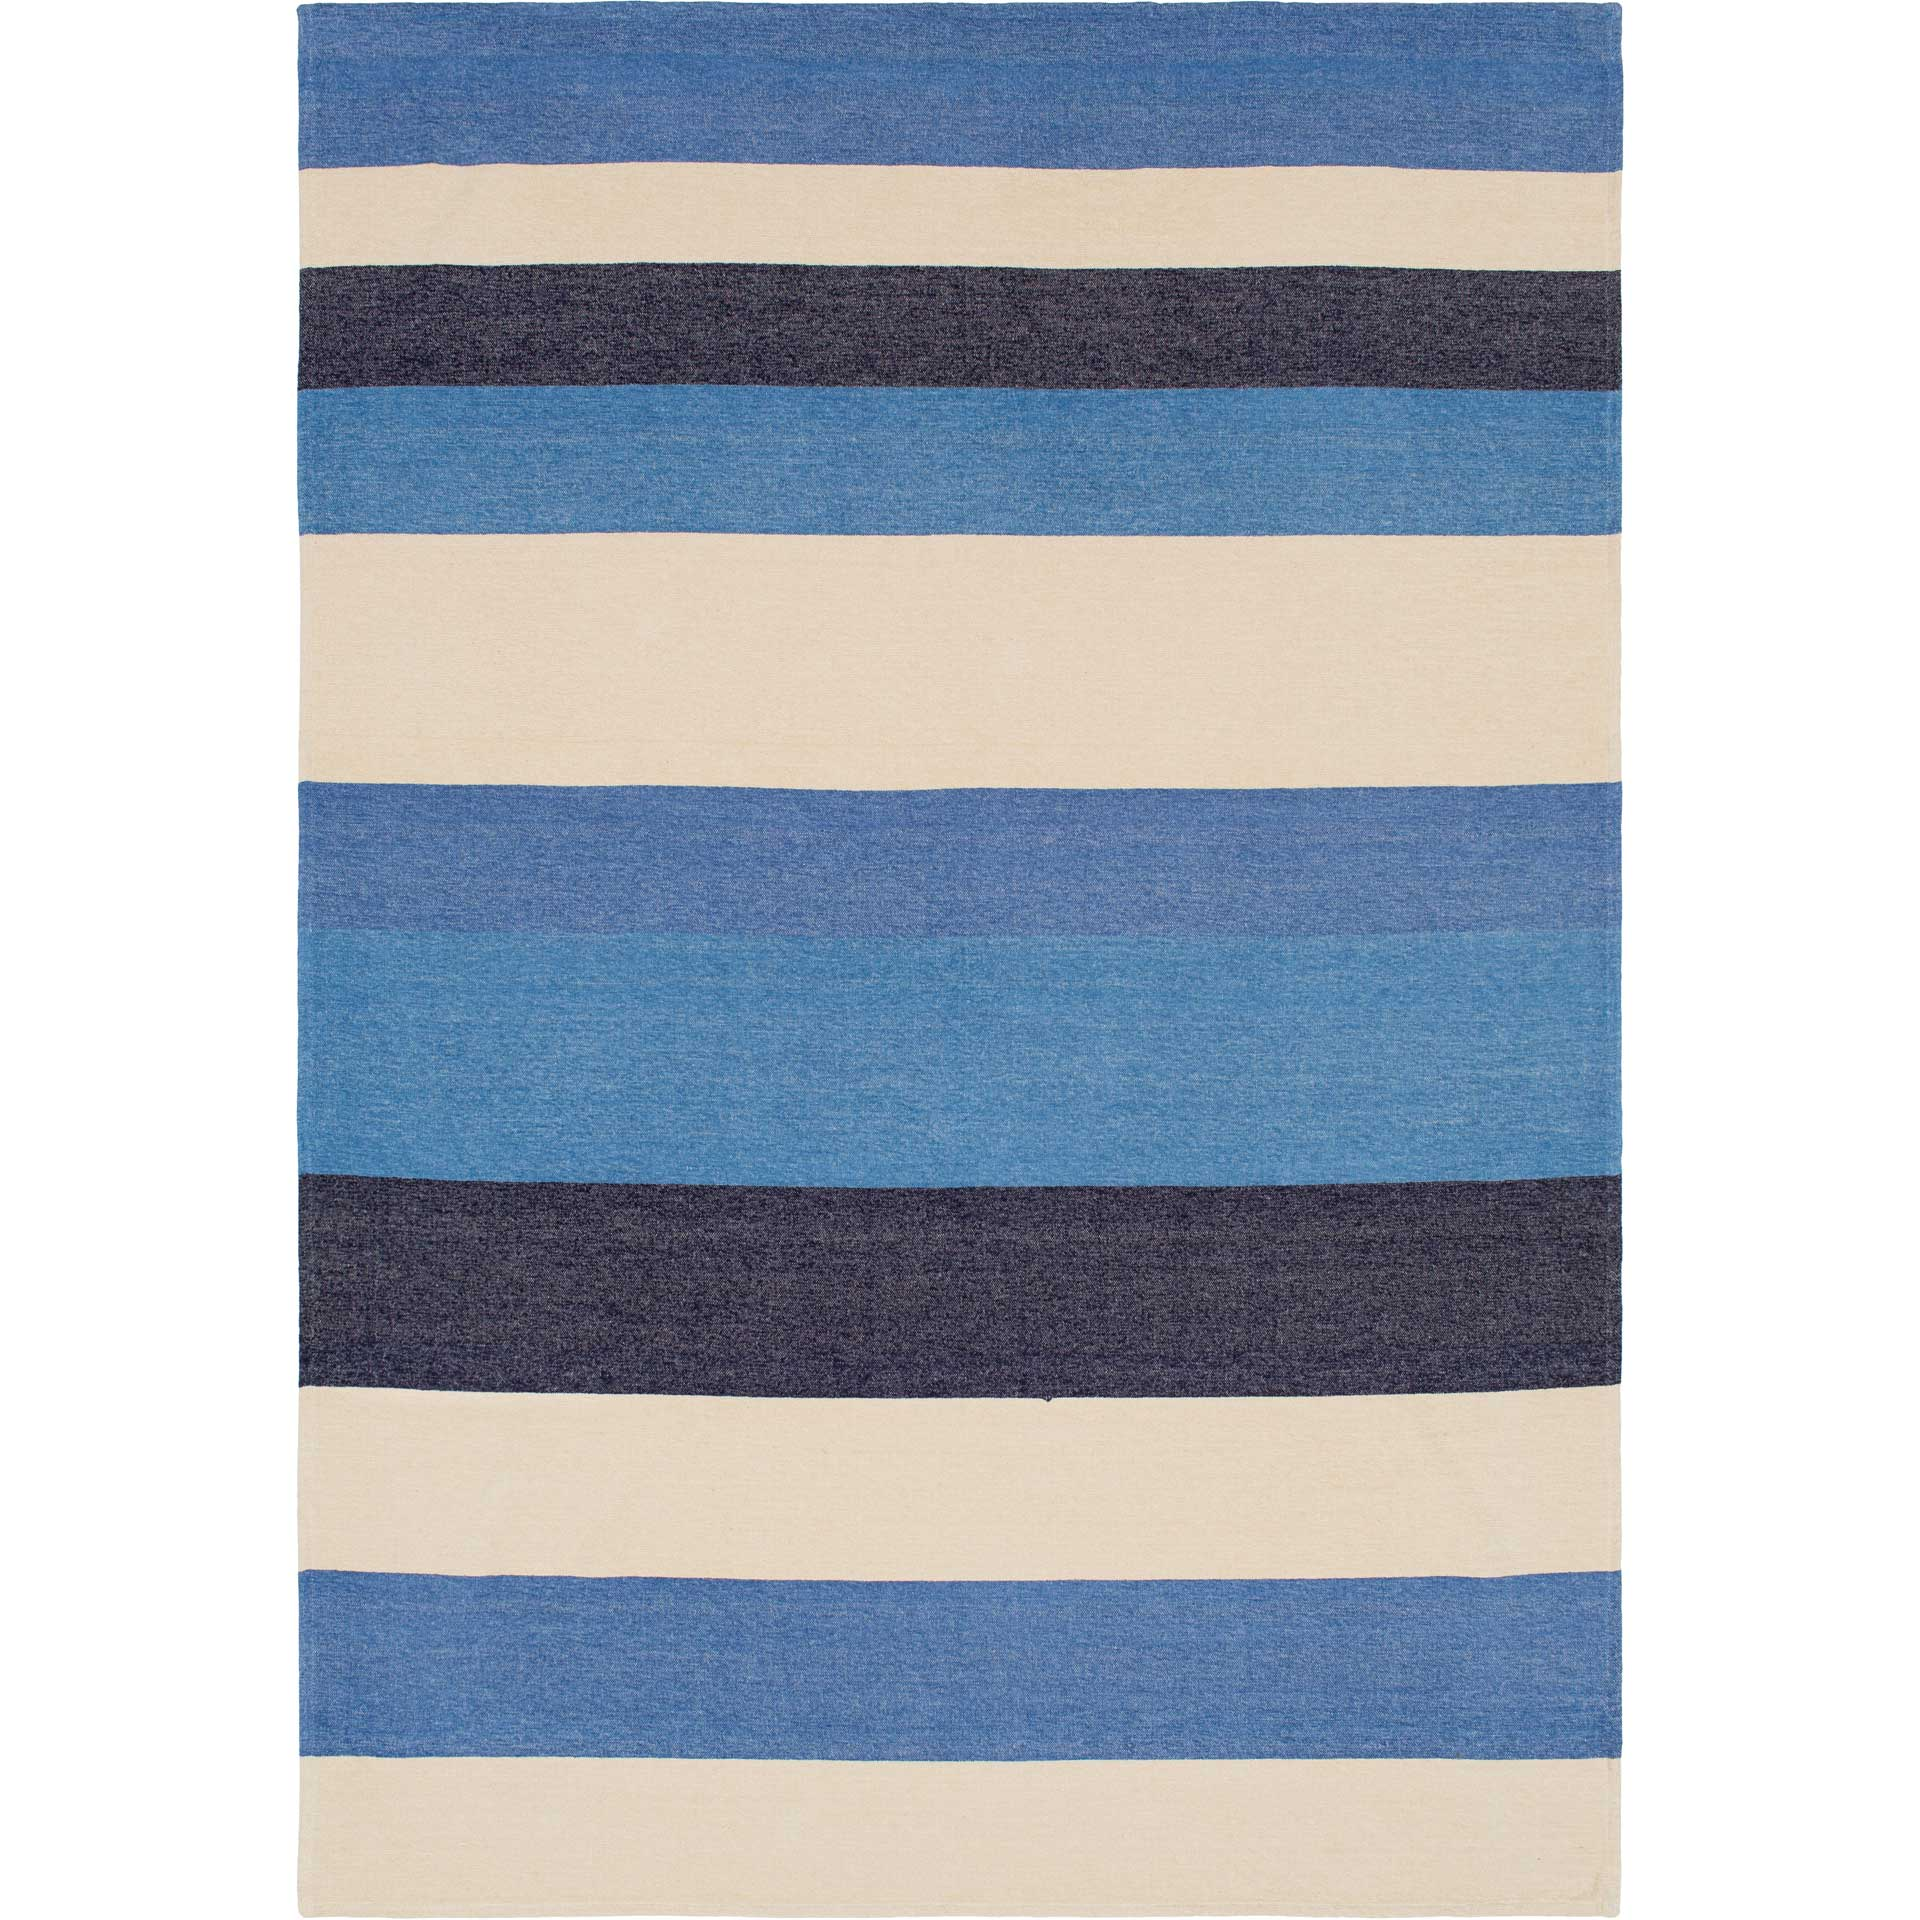 Meera Throw Bright Blue/Navy/Beige